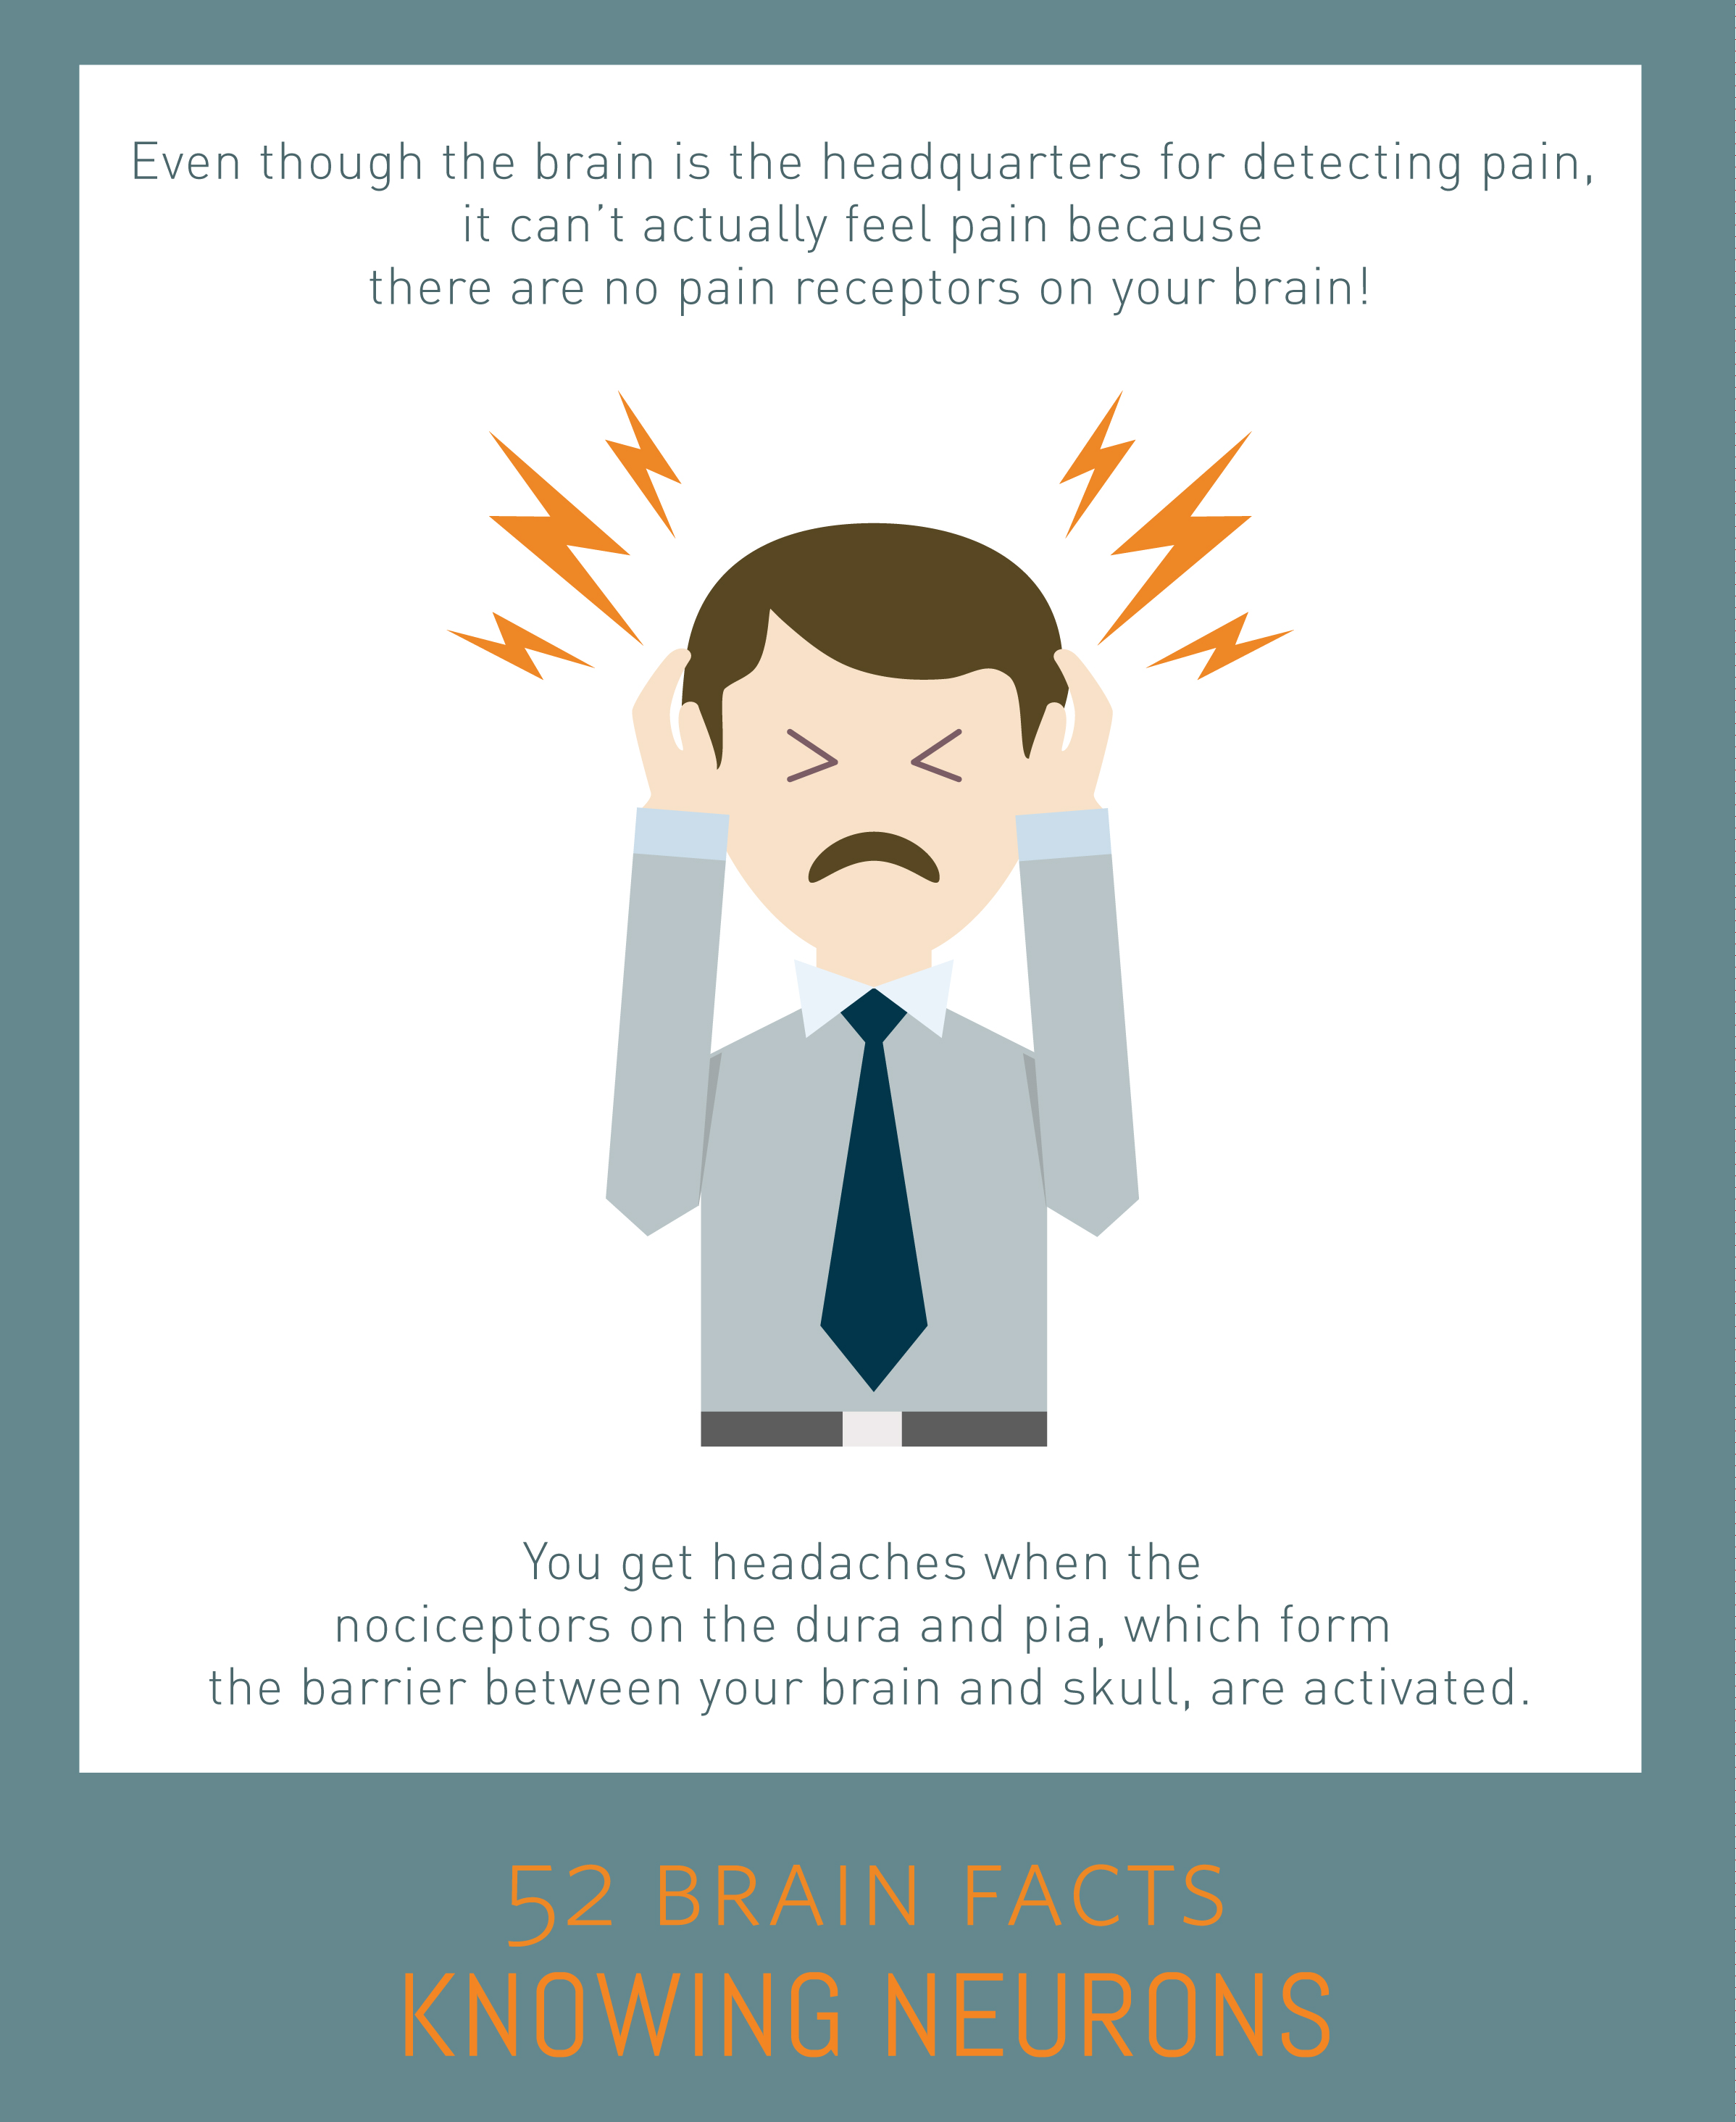 Myth or Fact? Cutting into the brain of an awake patient directly results in agonizing pain.